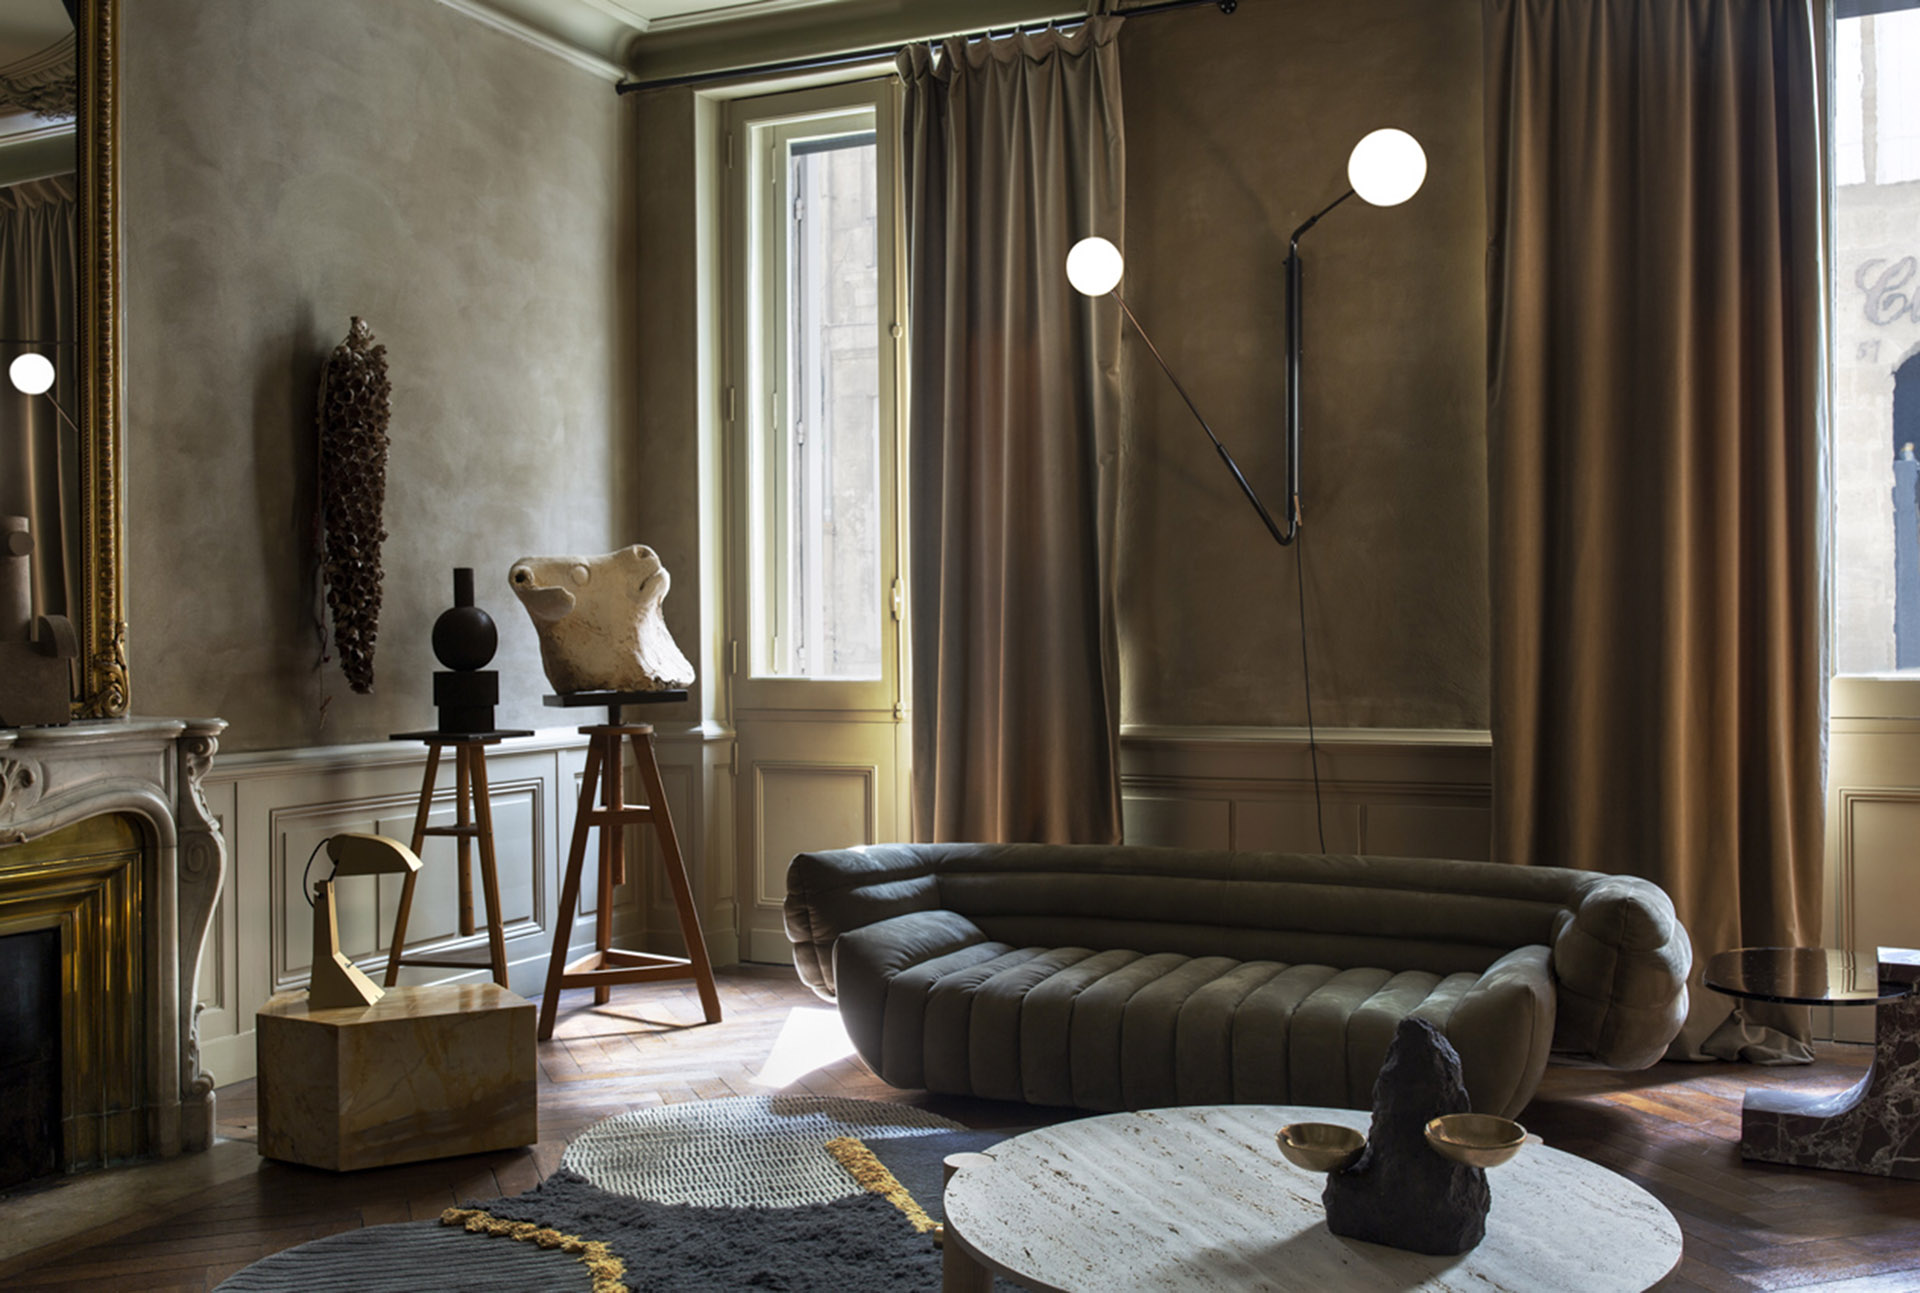 """BAXTER PARTNER OF """"GENIUS LOCI"""", A PROJECT BY STUDIOPEPE AND COUTUME {STUDIO}"""